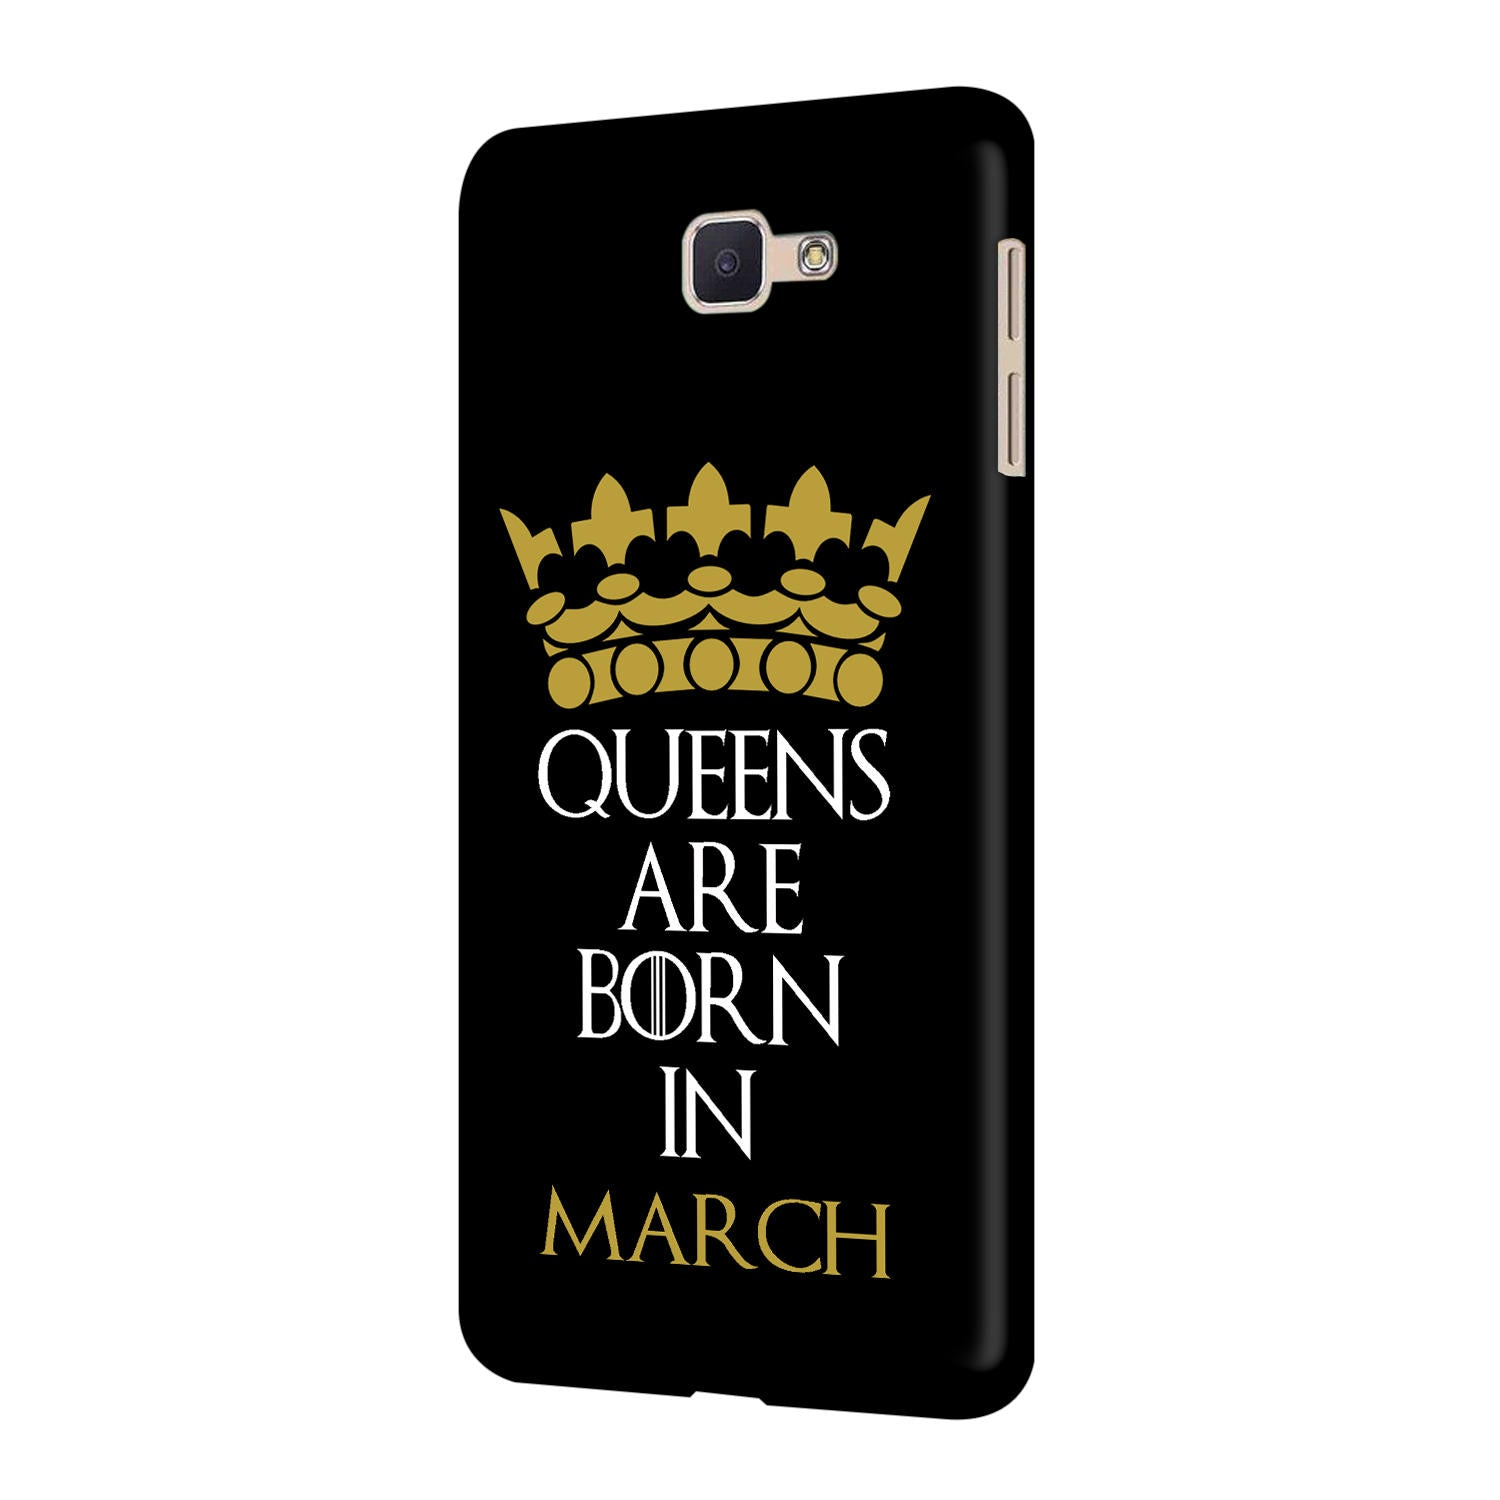 Queens March Samsung Galaxy J7 Prime Mobile Cover Case - MADANYU